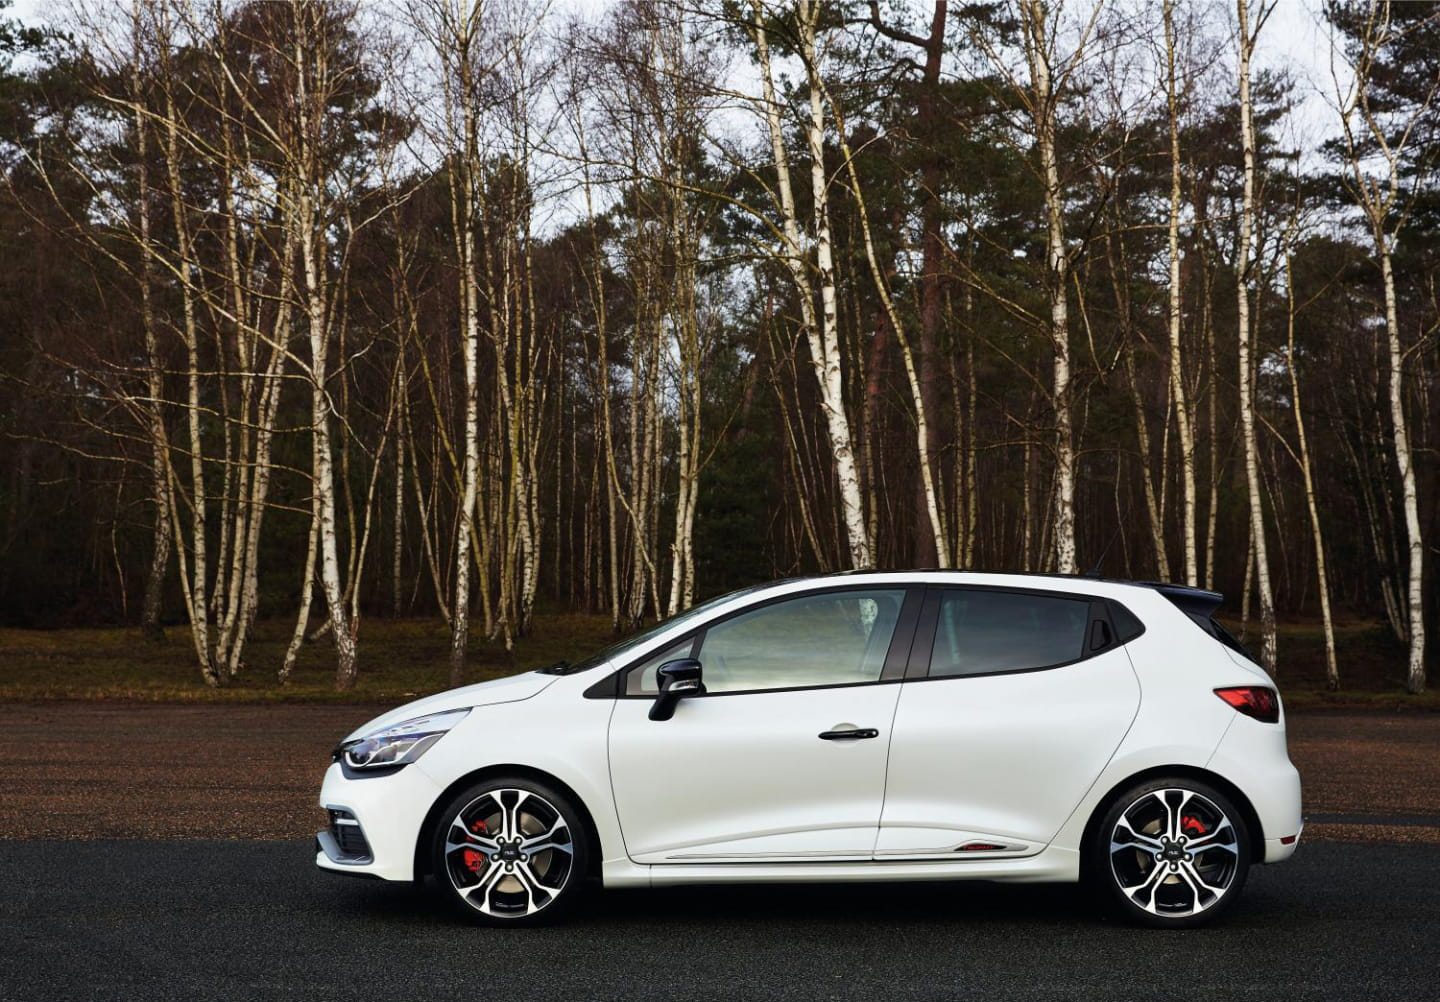 Renault_Clio_RS_220_Trophy_EDC_2015_DM_3